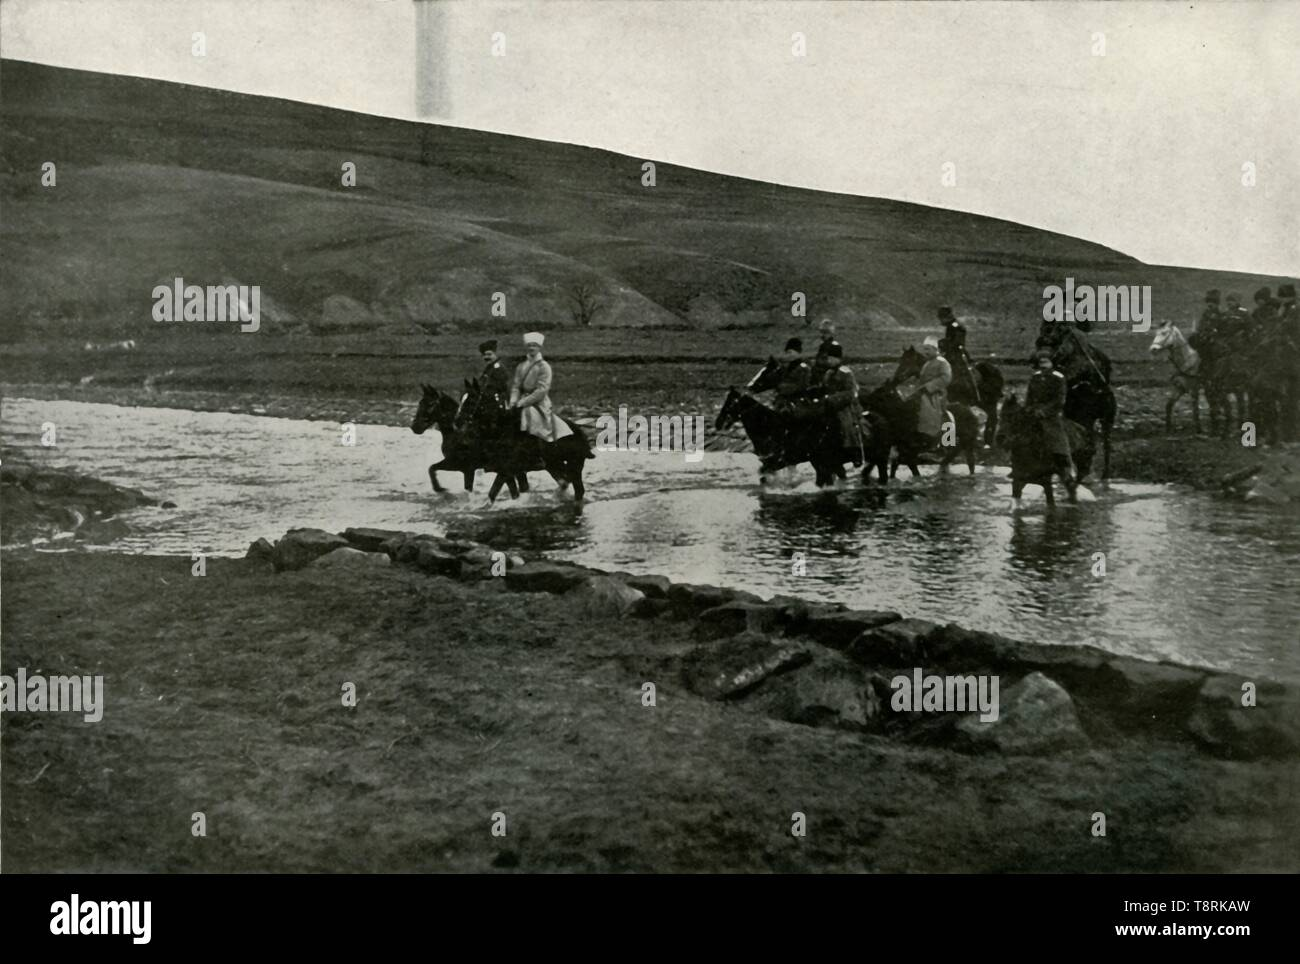 """'The Grand Duke Michael and his Staff', (1919). Scene from the First World War, 1914-1919: 'The Grand Duke [Michael Alexandrovich of Russia 1878-1918], commanding the Caucasian Native Division, is shown crossing a small tributary of the San River, which flows through the low foothills of the Carpathians, which here somewhat resemble the South Downs in appearance.' From """"The History of the Great European War: its causes and effects"""", Vol. IV, by W. Stanley Macbean Knight. [Caxton Pulishing Company, Limited, London, 1919] - Stock Image"""